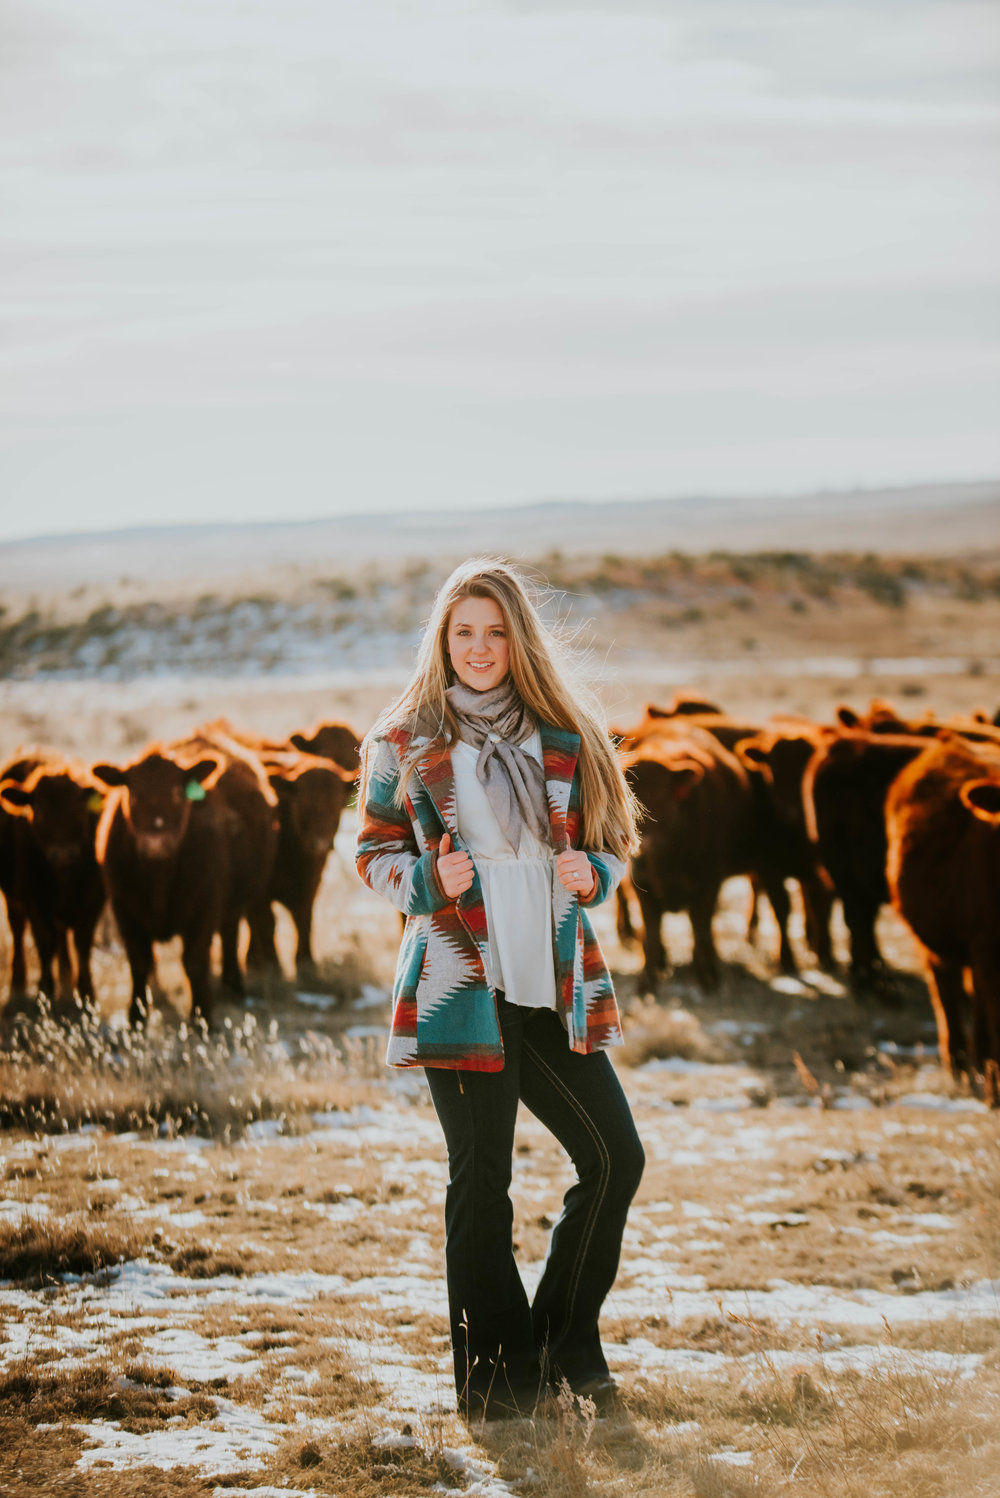 Miss. Miller's Photography | Colorado Photographer | Ranch Photo Session | cattle